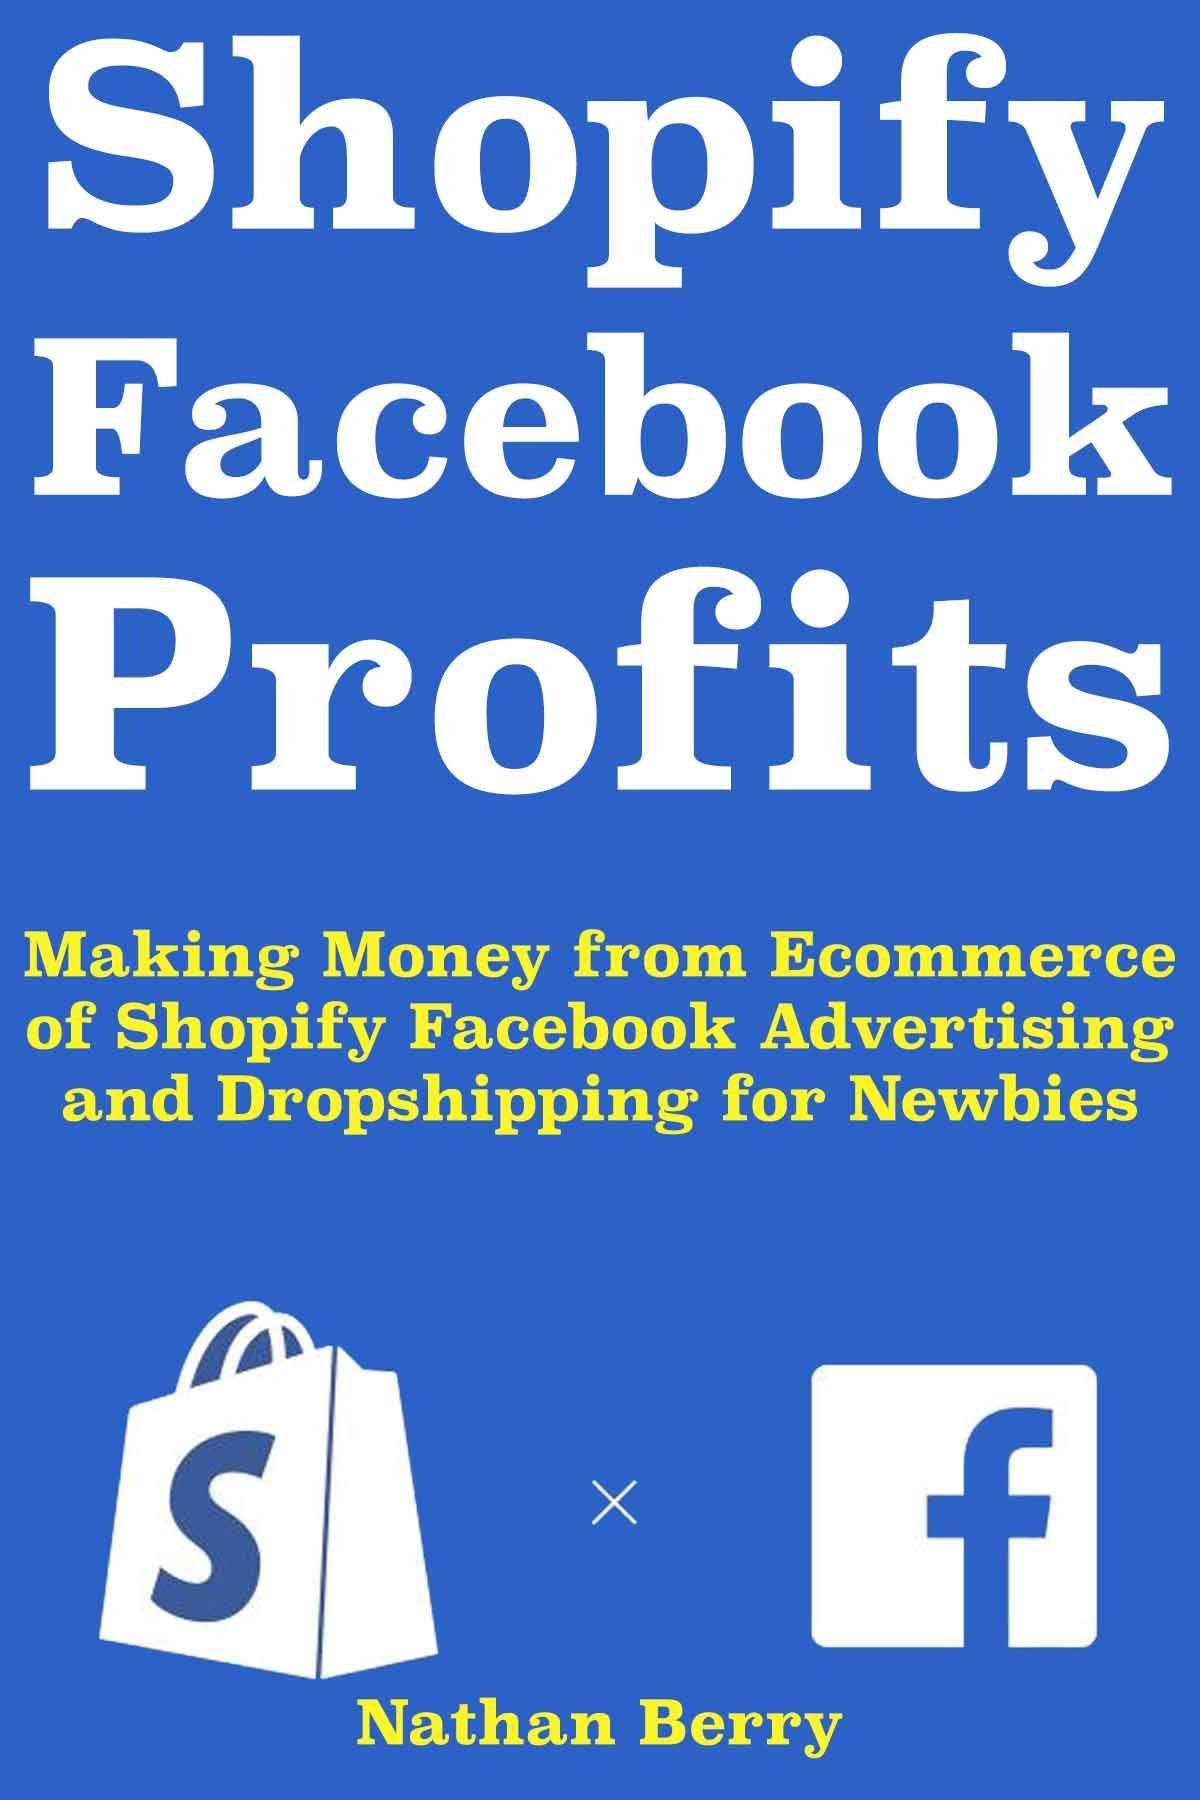 Shopify Facebook Profits: Making Money from Ecommerce of Shopify Facebook Advertising and Dropshipping for Newbies